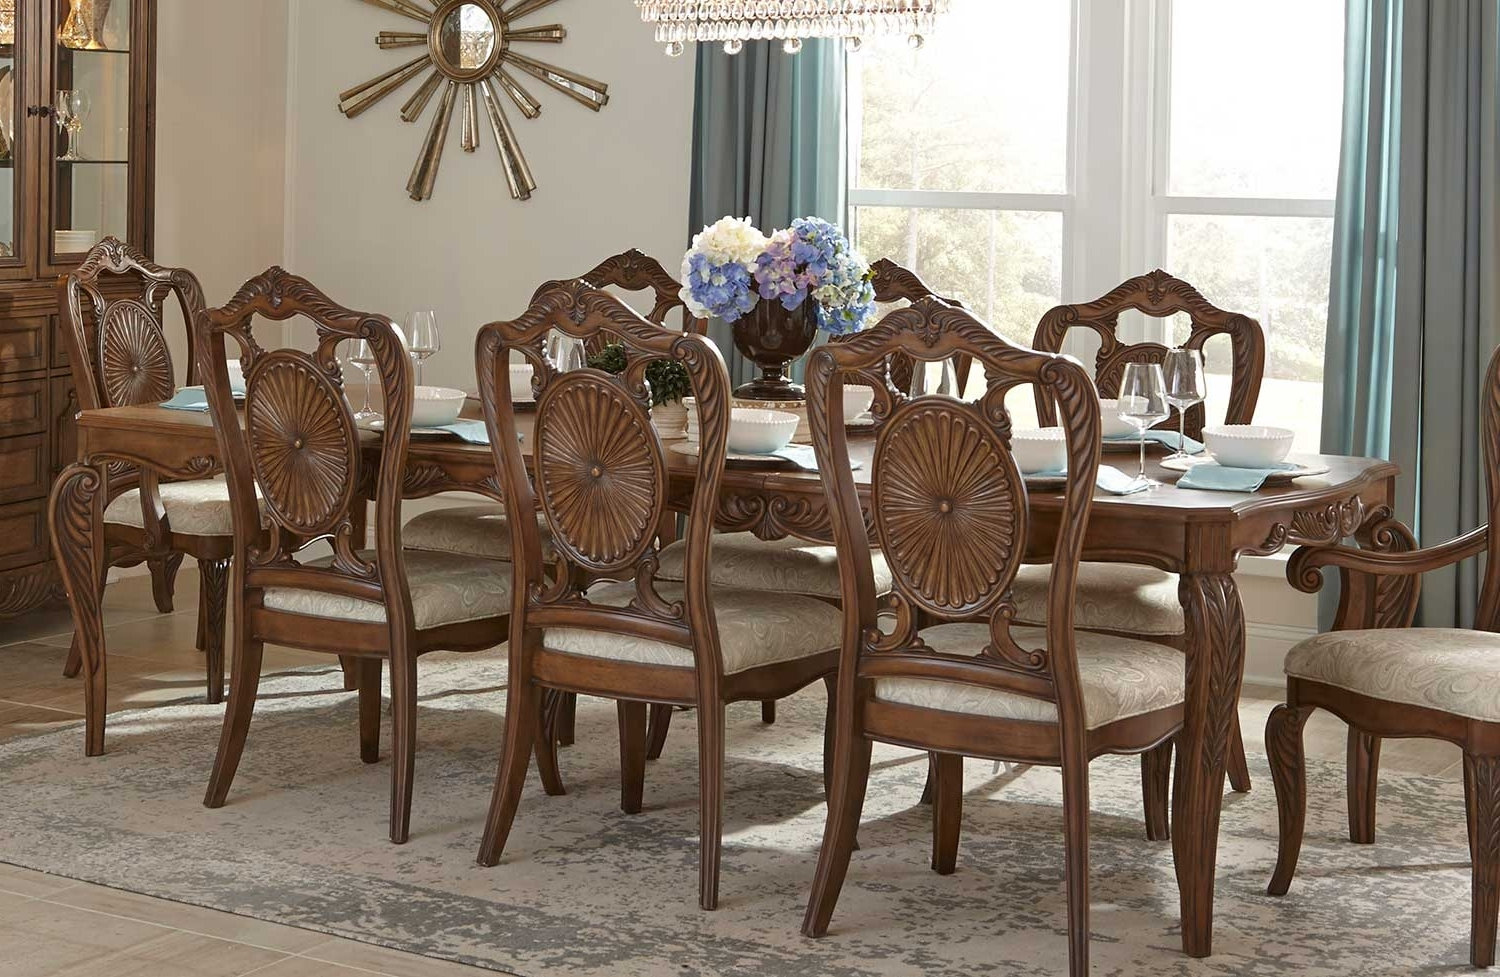 Homelegance Moorewood Park Dining Table With Leaf – Pecan 1704 108 Intended For Well Liked Bale Rustic Grey Dining Tables (View 11 of 25)